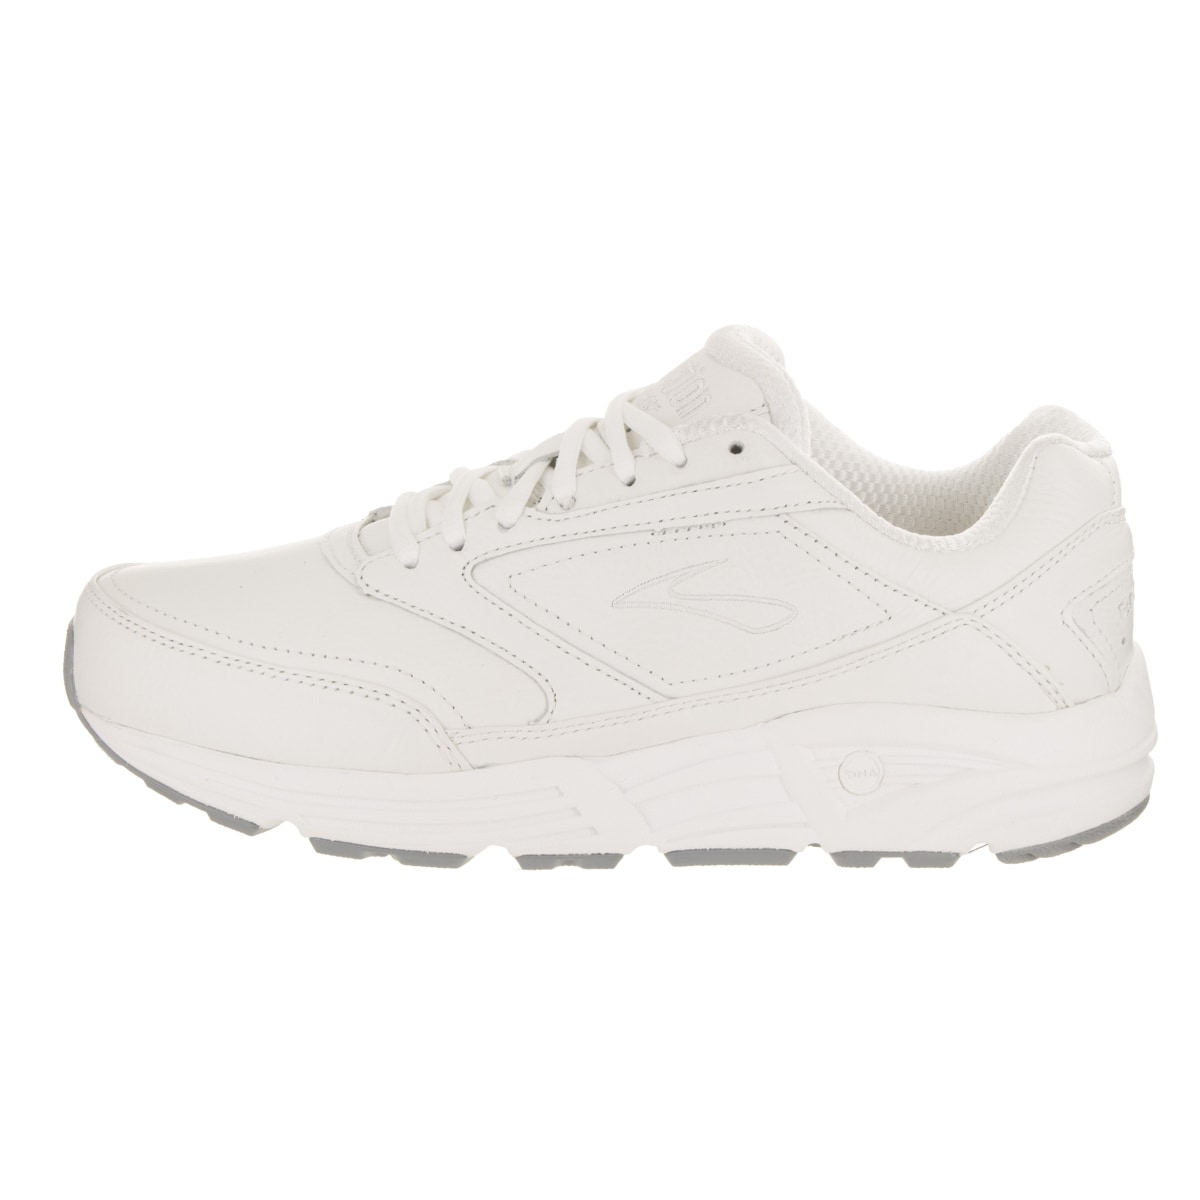 1c906830cf0 Shop Brooks Men s Addiction Walker 2E White Leather Running Shoes - Free  Shipping Today - Overstock - 16432010